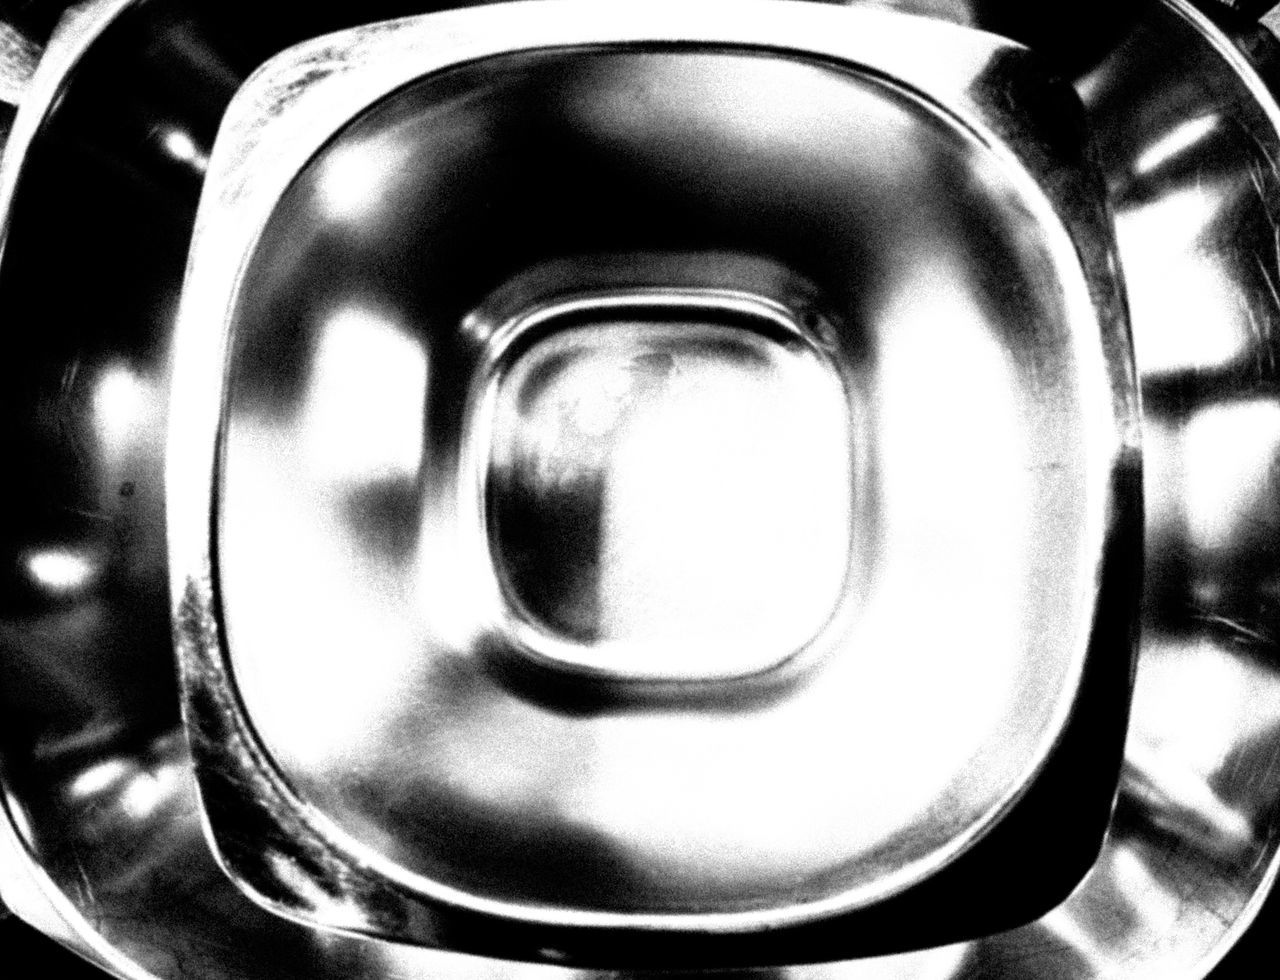 metal, silver colored, close-up, no people, shiny, indoors, aluminum, day